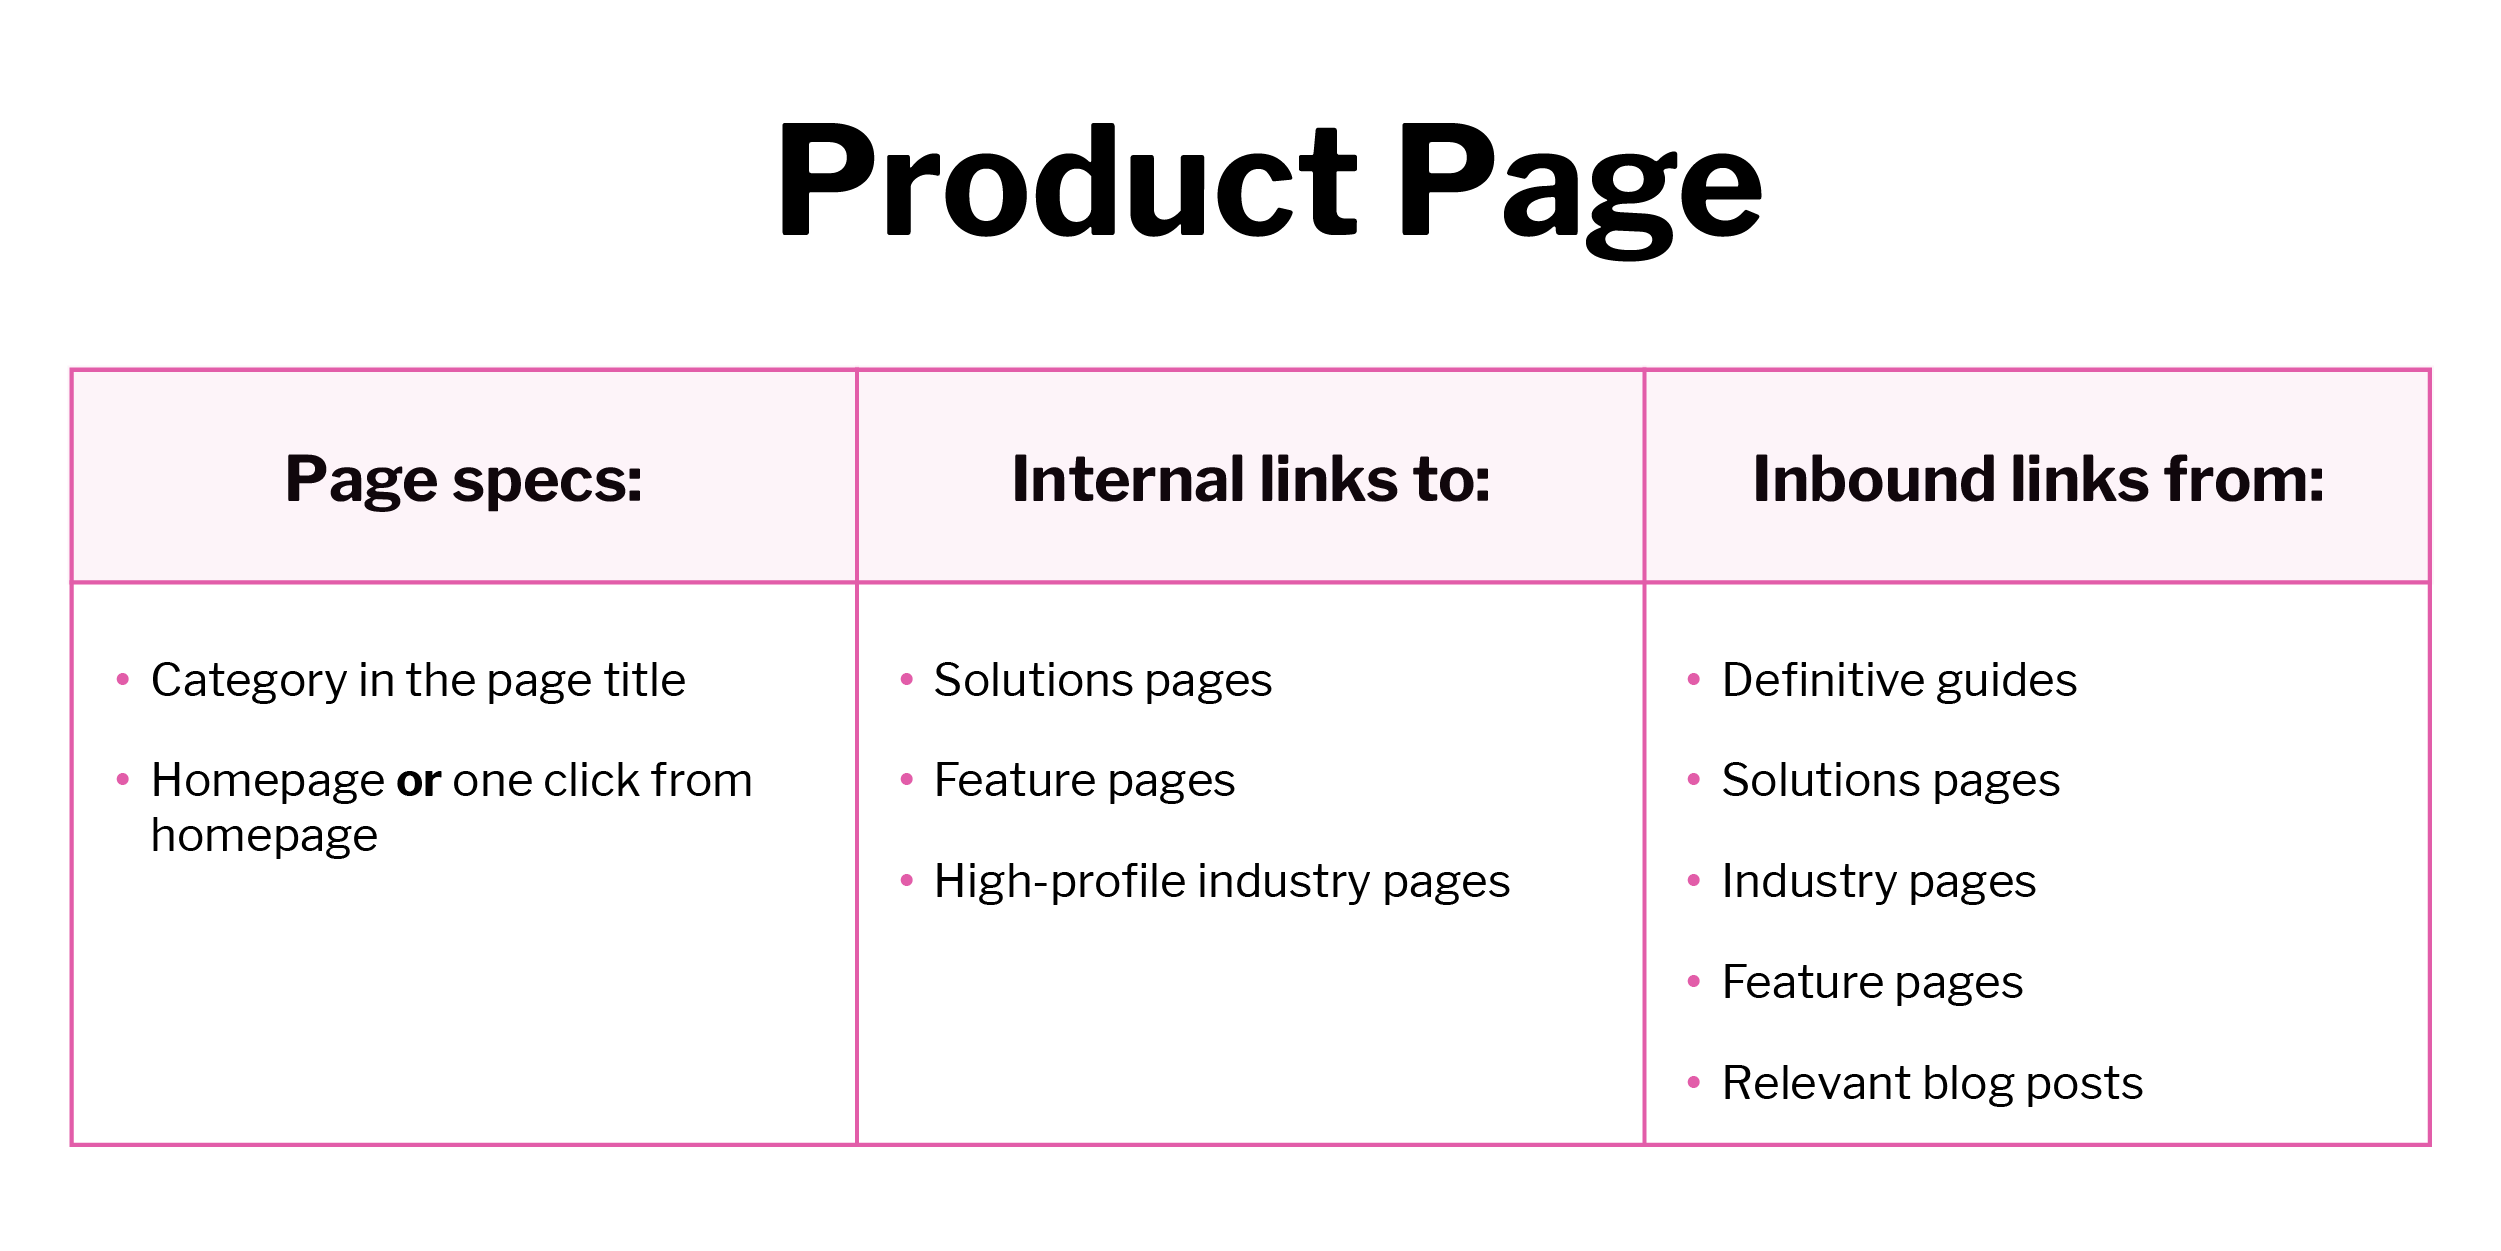 Table of internal links for optimizing a product page